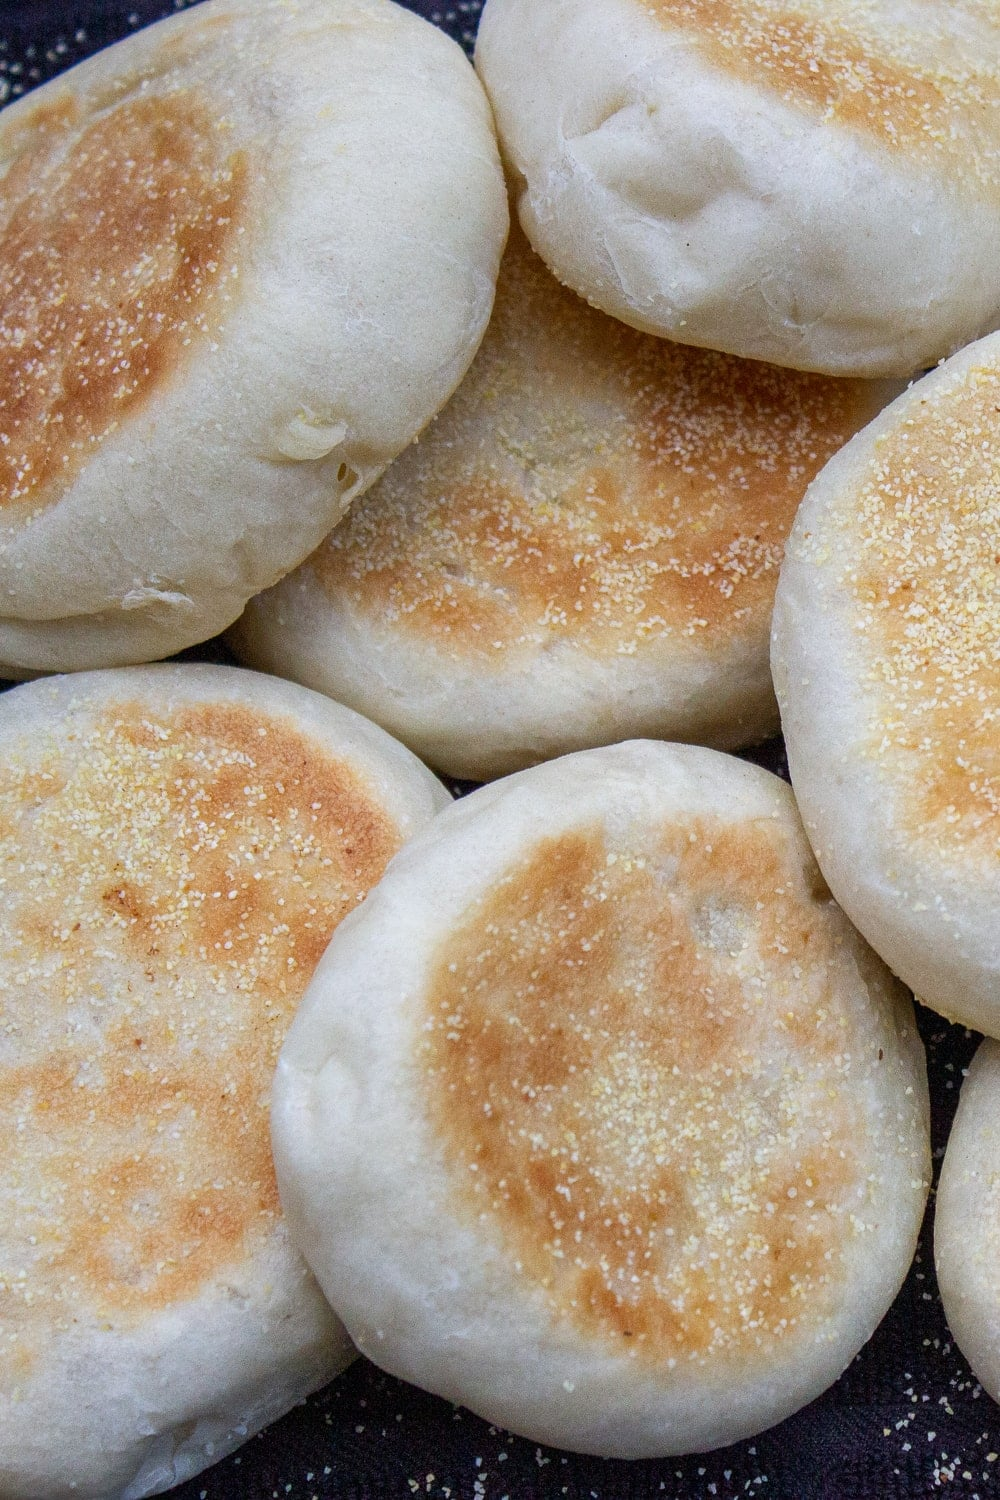 homemade English muffins laying on a black tea towel p